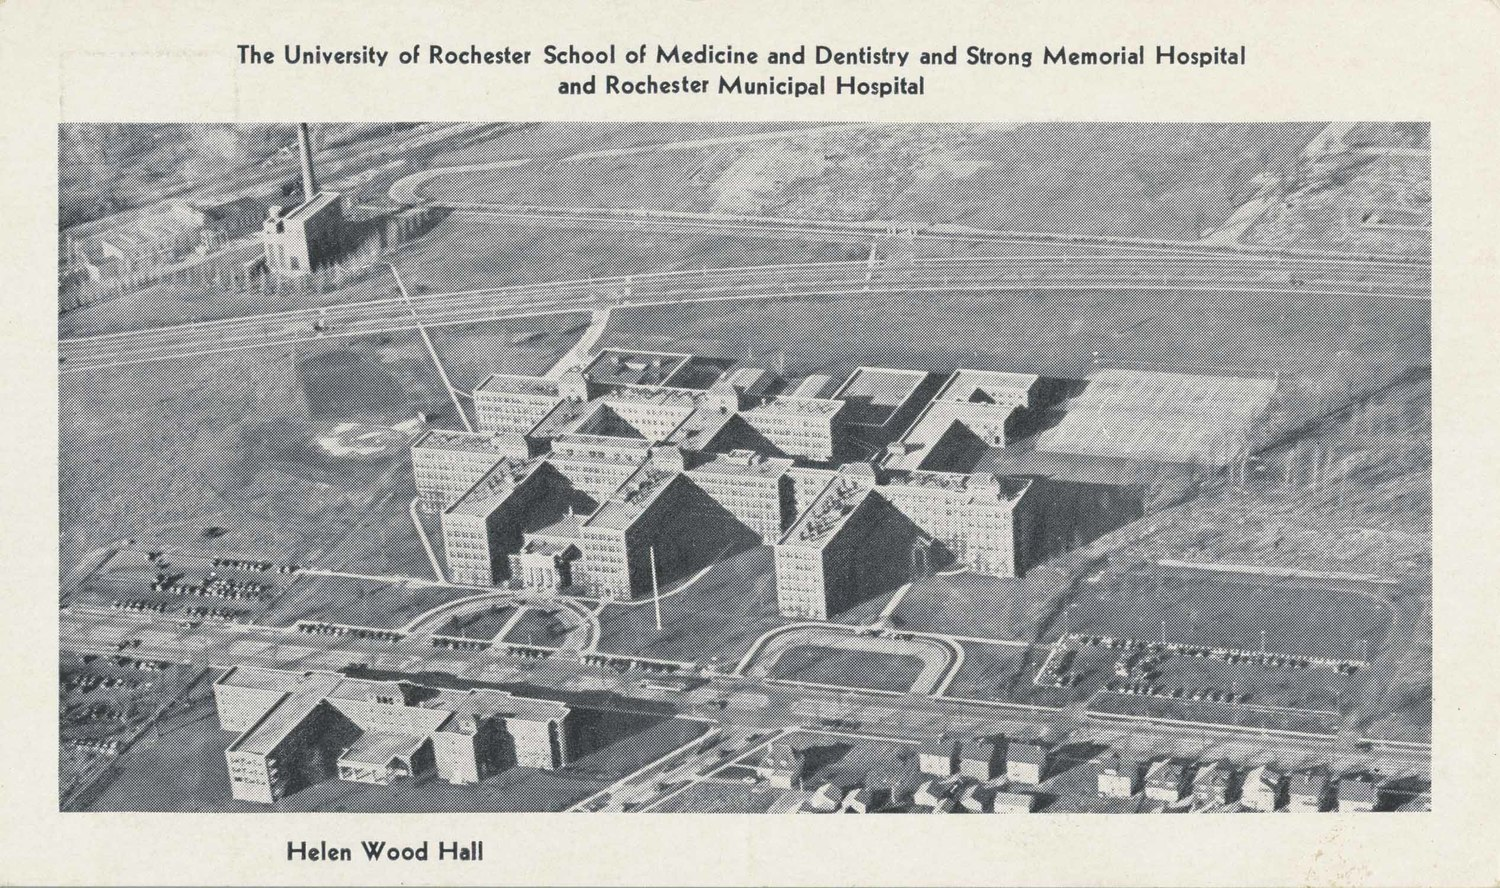 The University of Rochester School of Medicine and Dentistry and Strong Memorial Hospital and Rochester Municipal Hospital. Helen Wood Hall.